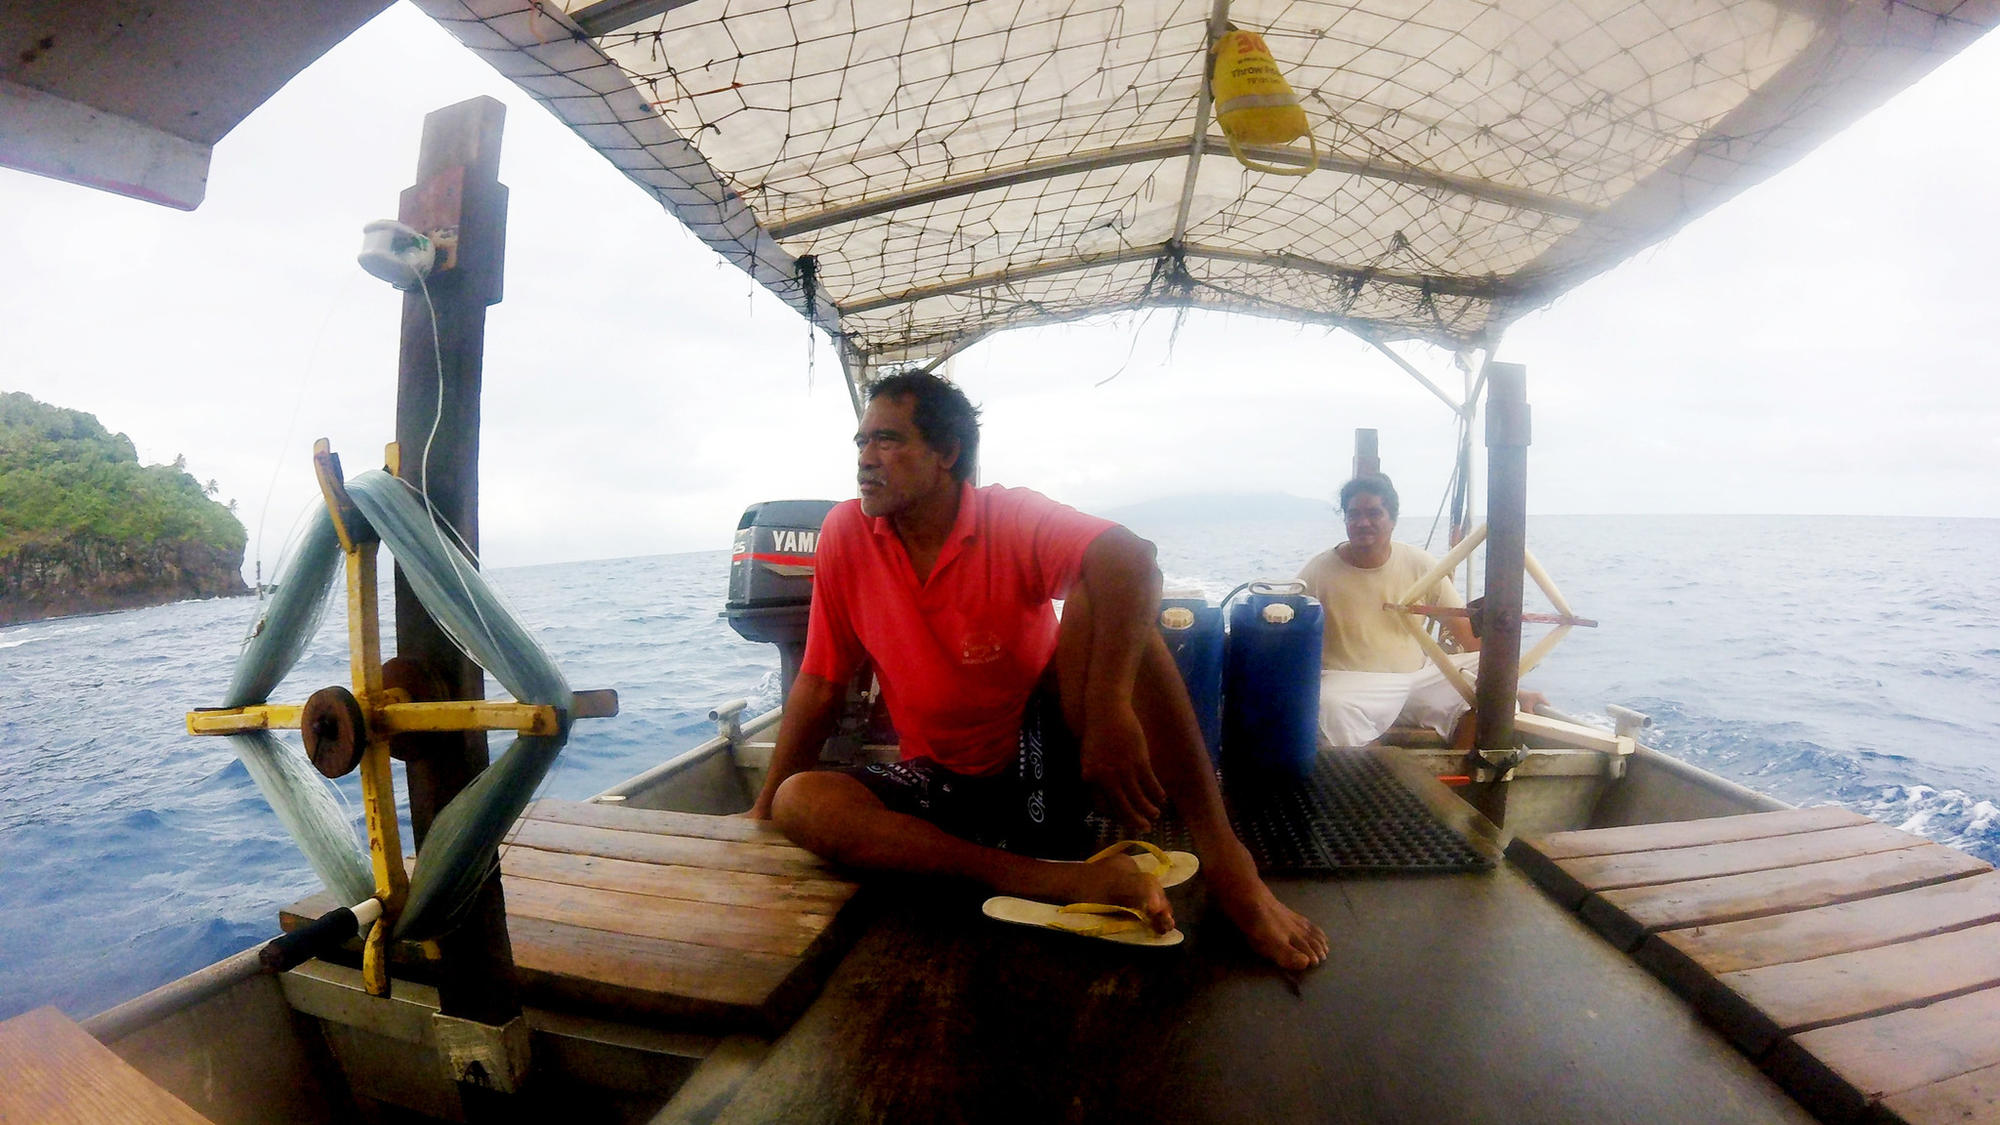 Fishermen Sam Vaa, in red, and Liu Sai sometimes carry passengers between the American Samoa islands of Ofu and Tau. There are no flights between the islands.